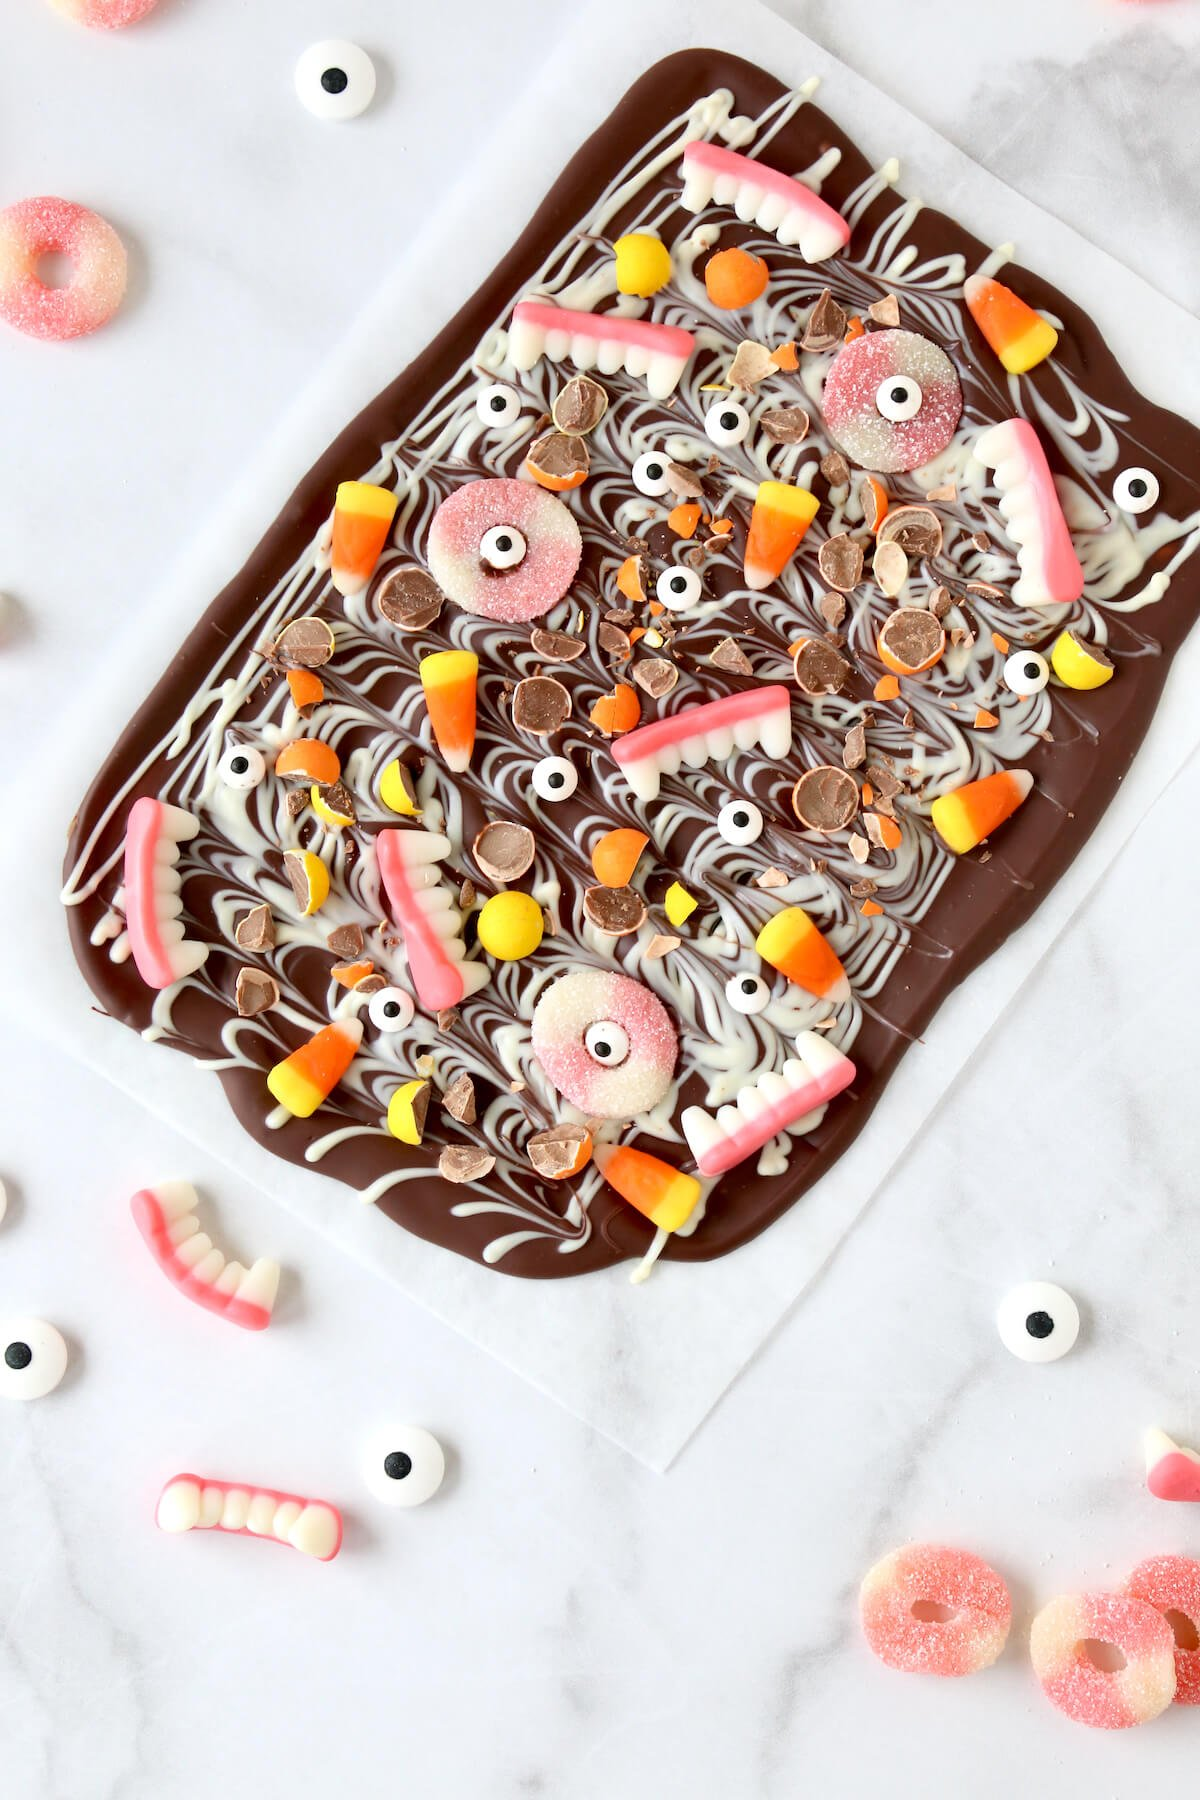 Dark chocolate spread on a sheet pan sprinkled with candy corn, pink rings, eye balls, candy teeth.